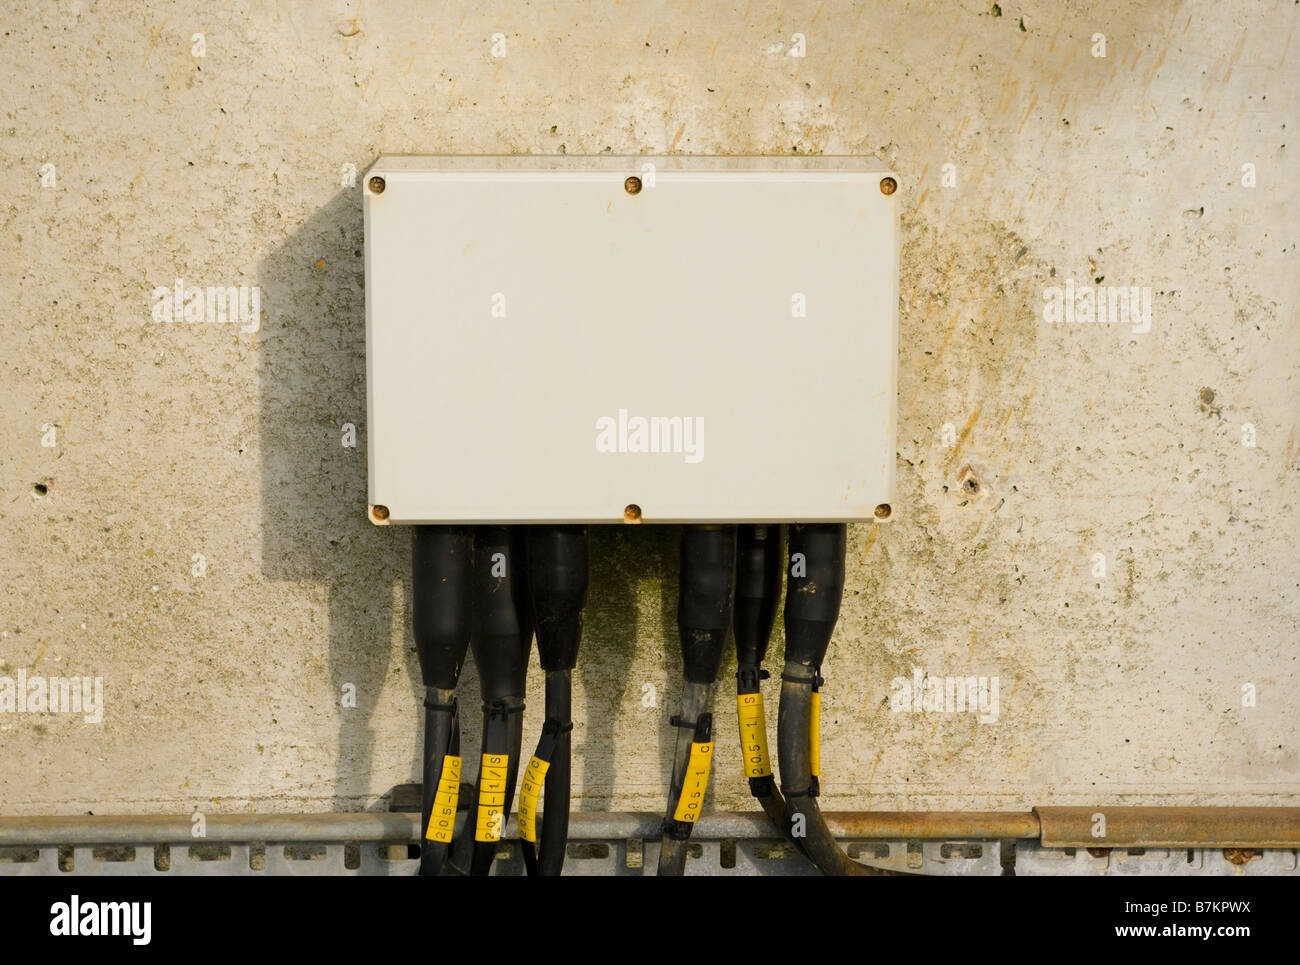 Electrical Junction Box Stock Photos House Wiring Electric Image